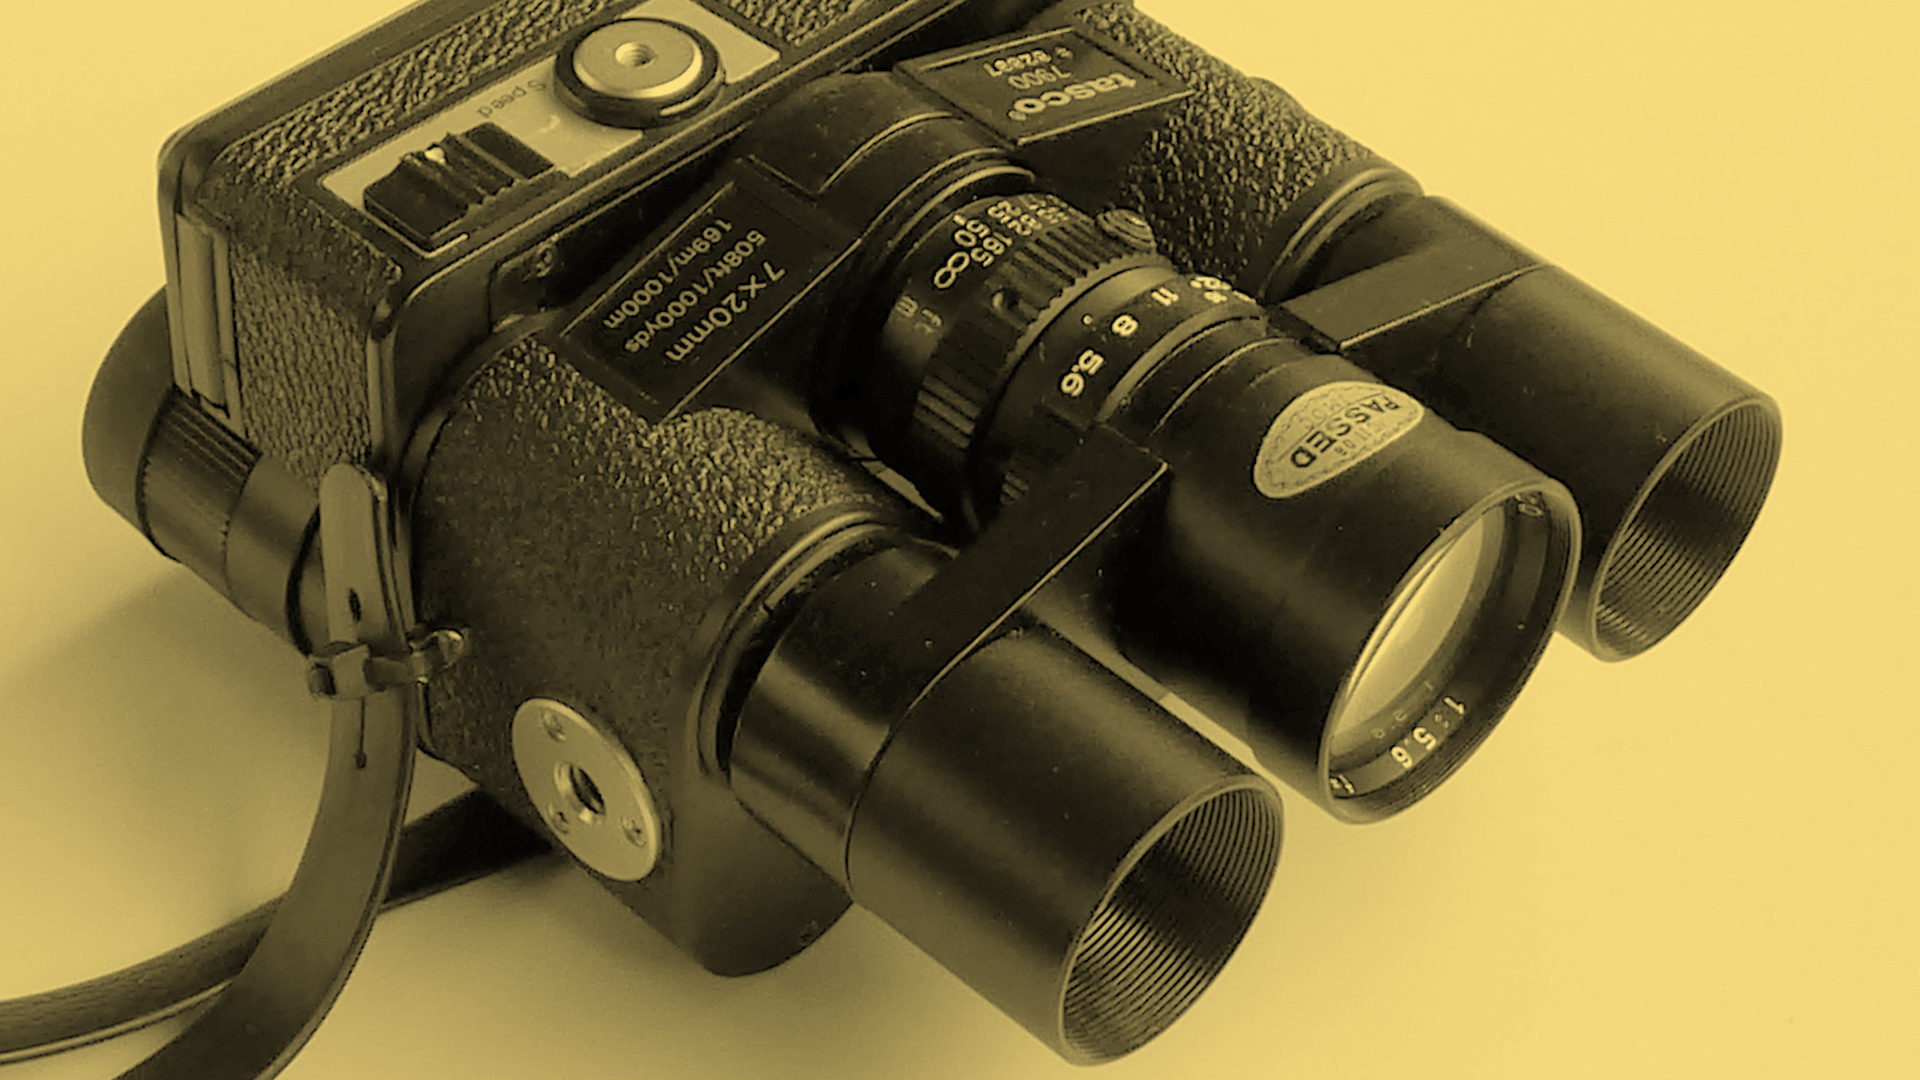 The front of the Tasco 7900 binocular camera on a yellow background